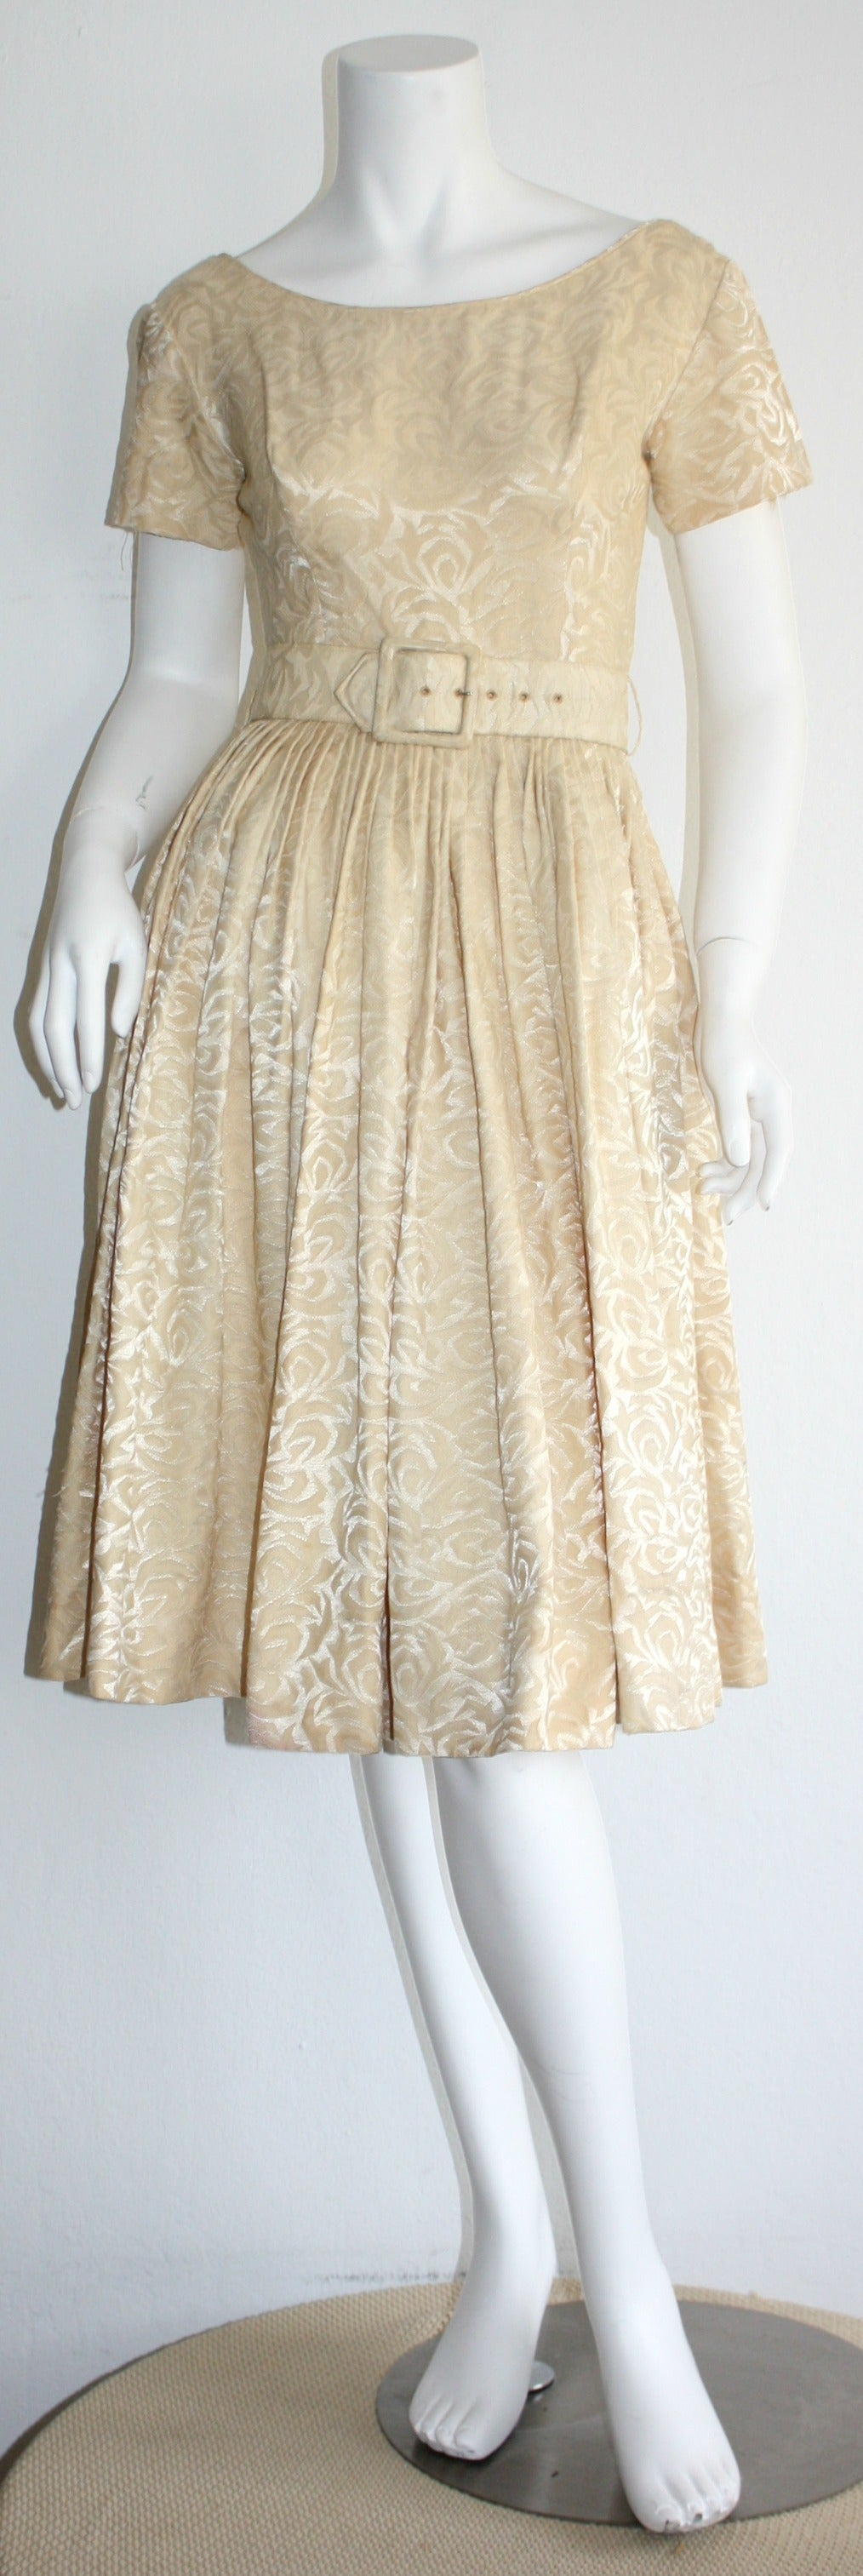 Wonderful vintage 1950s Gigi Young ivory silk dress, with floral background motif. Features detachable belt. Flattering full skirt, that looks great on the dance floor! Also room for a crinoline. Such a pretty, and versatile dress! In great